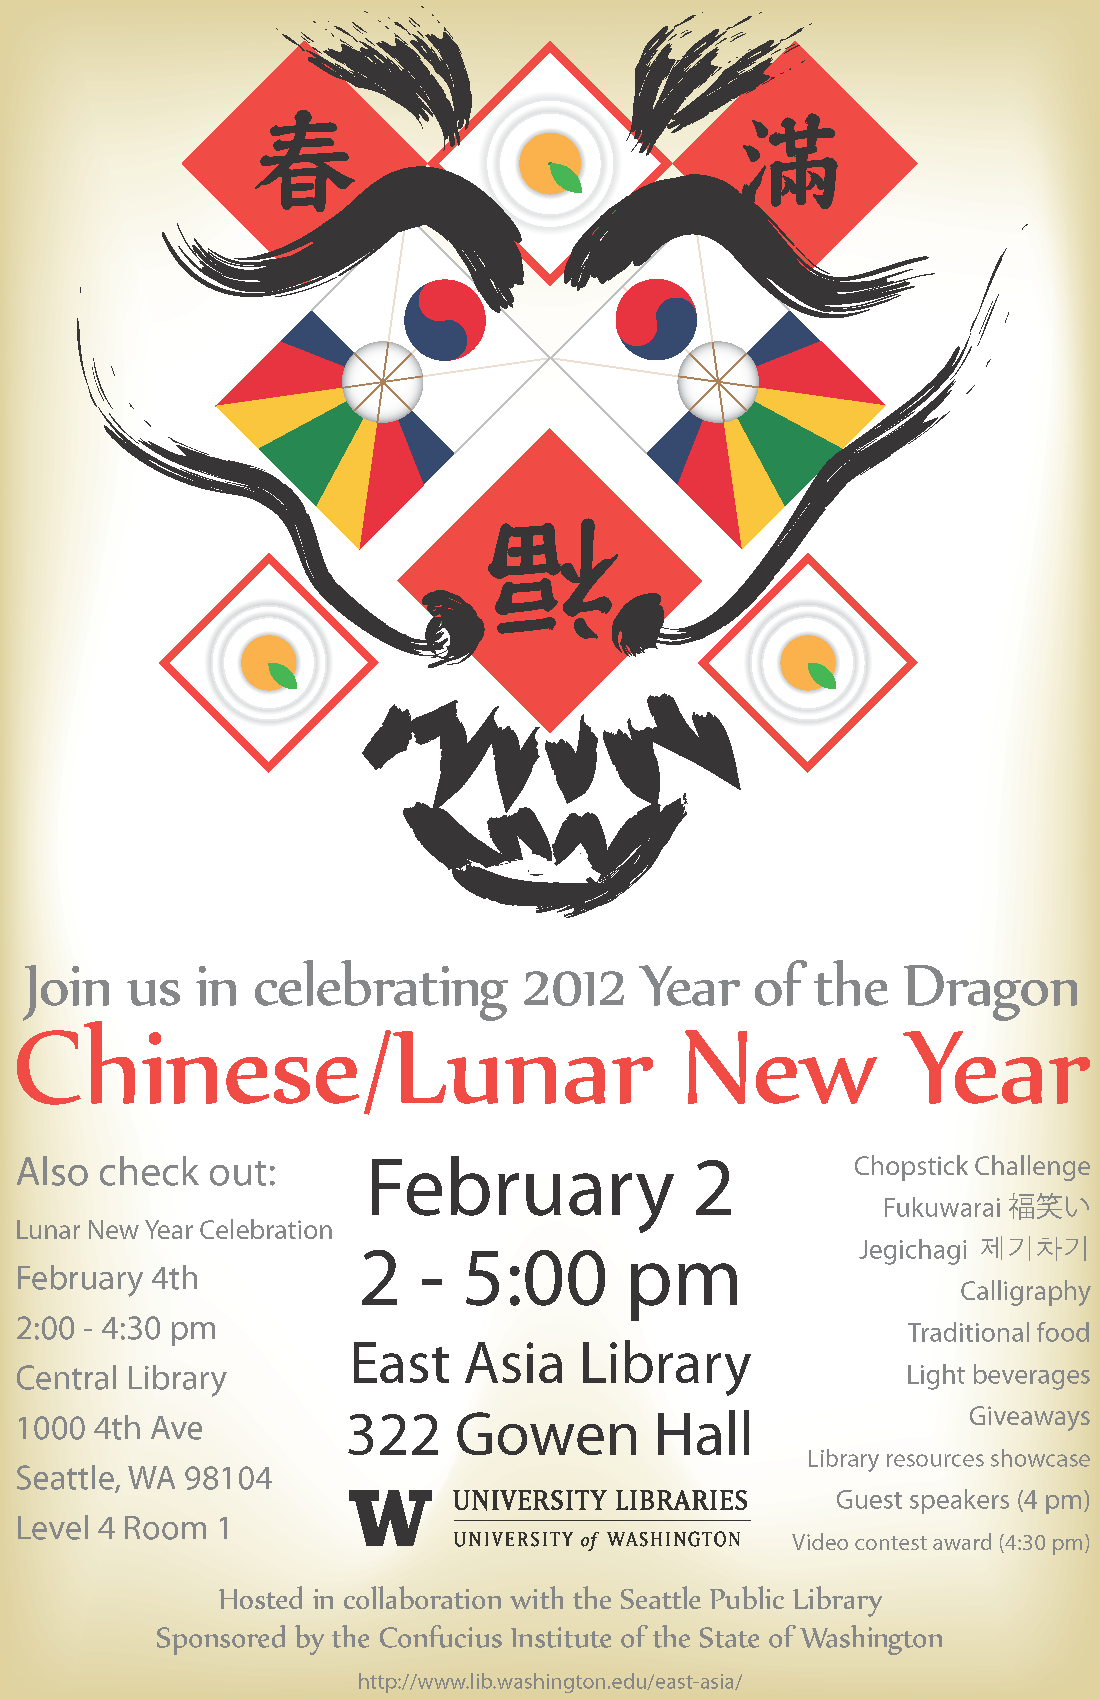 2012 Chinese/Lunar New Year poster — UW Libraries